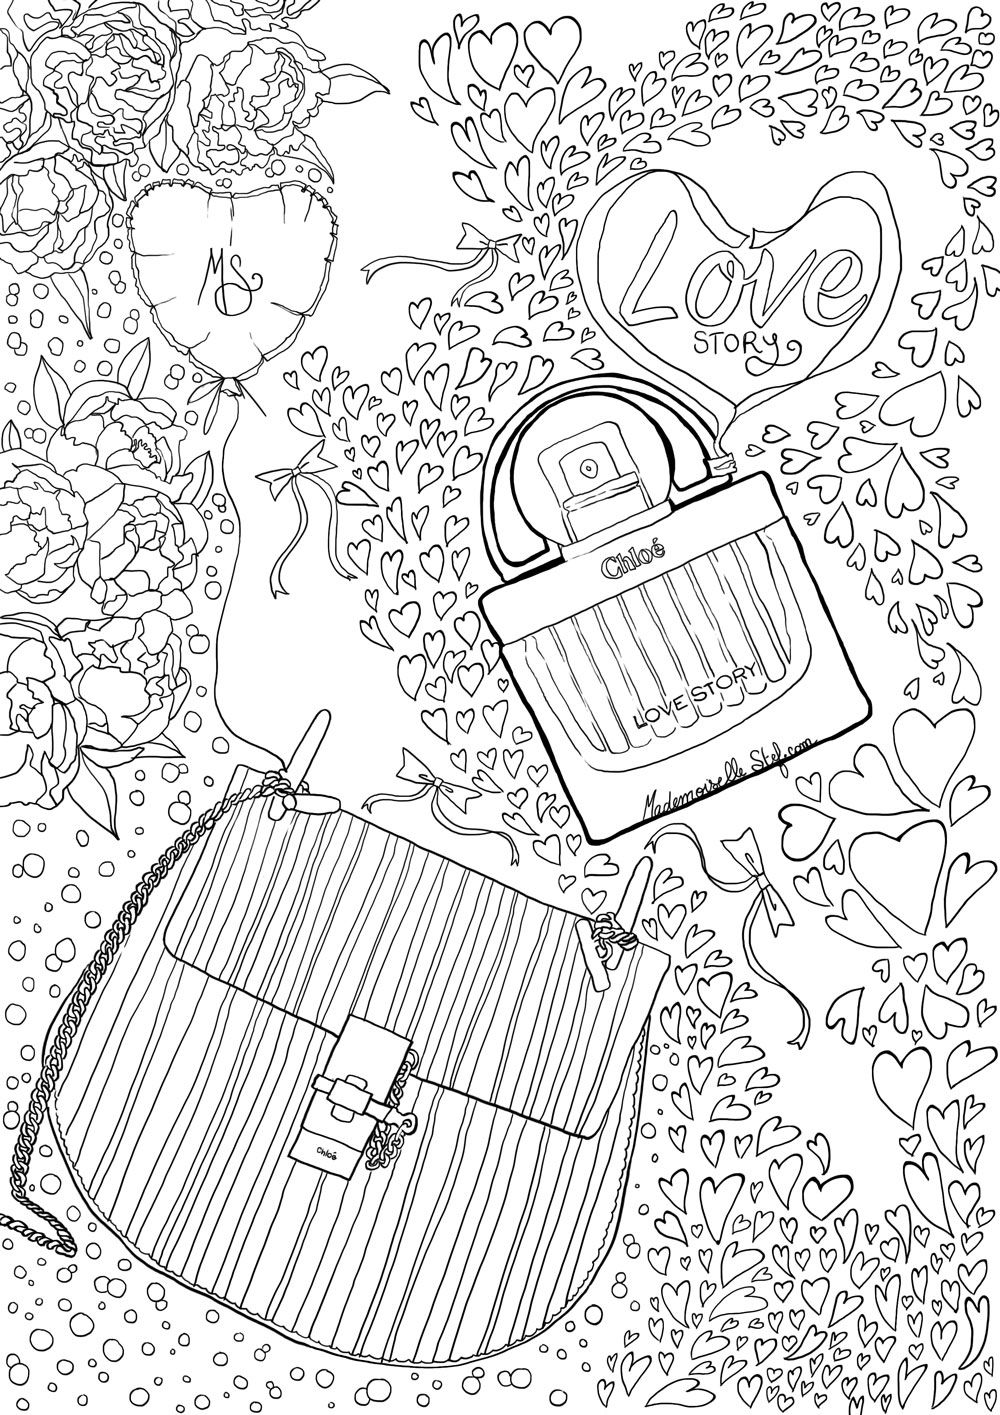 AdulteLove Story ChloéDessin Pour Illustration Coloriage De WED9beH2IY